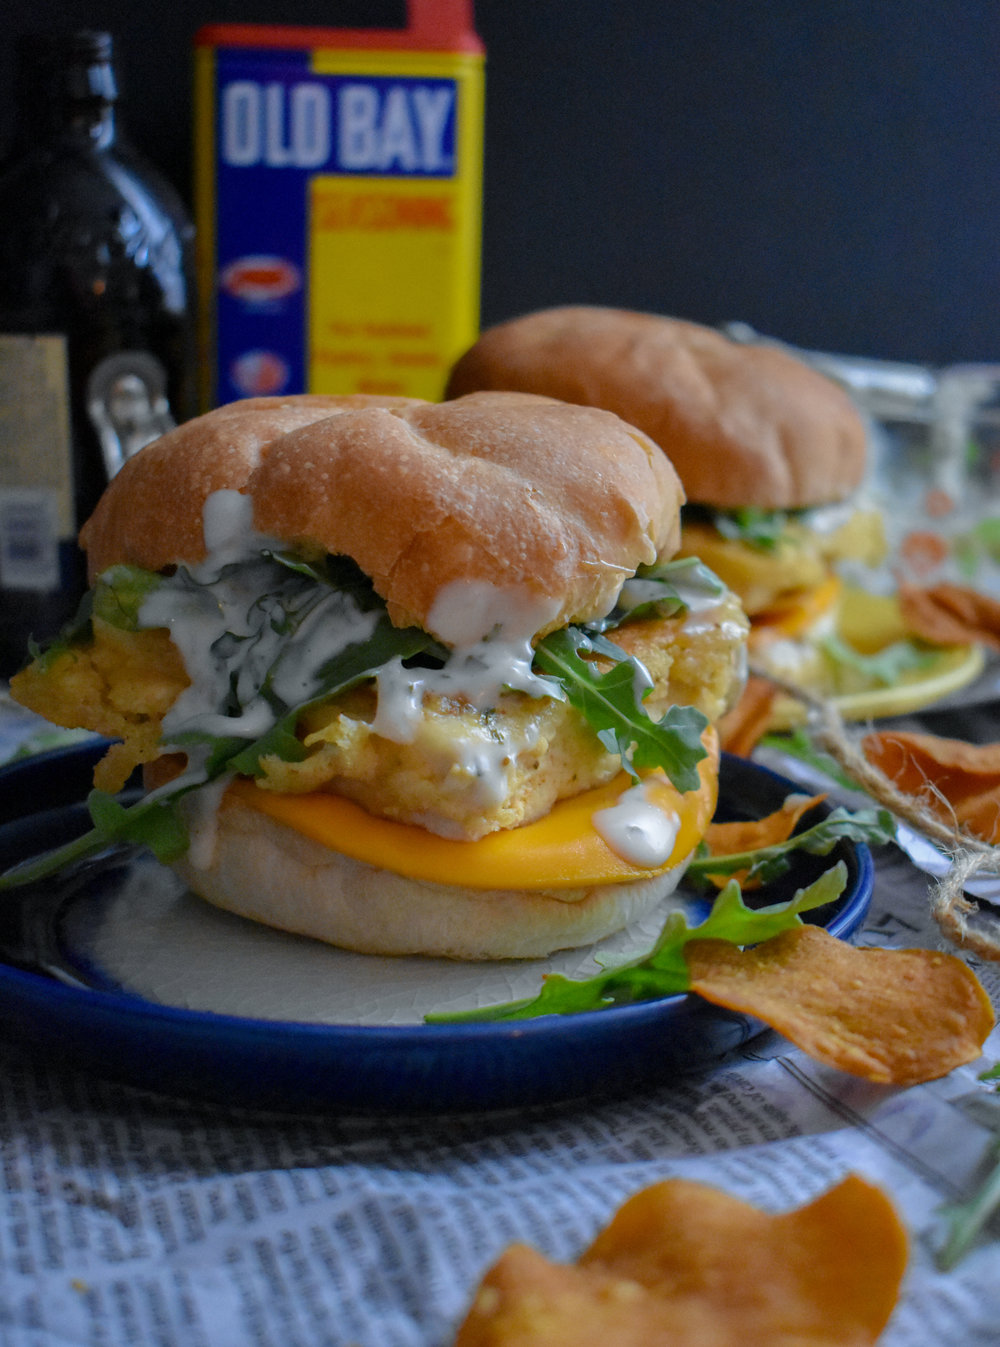 8. To finish, build the sandwich. Place sliced cheese on bottom, place fillet above that, add handful of arugula, and then finish with tartar sauce. Squish it down and enjoy!